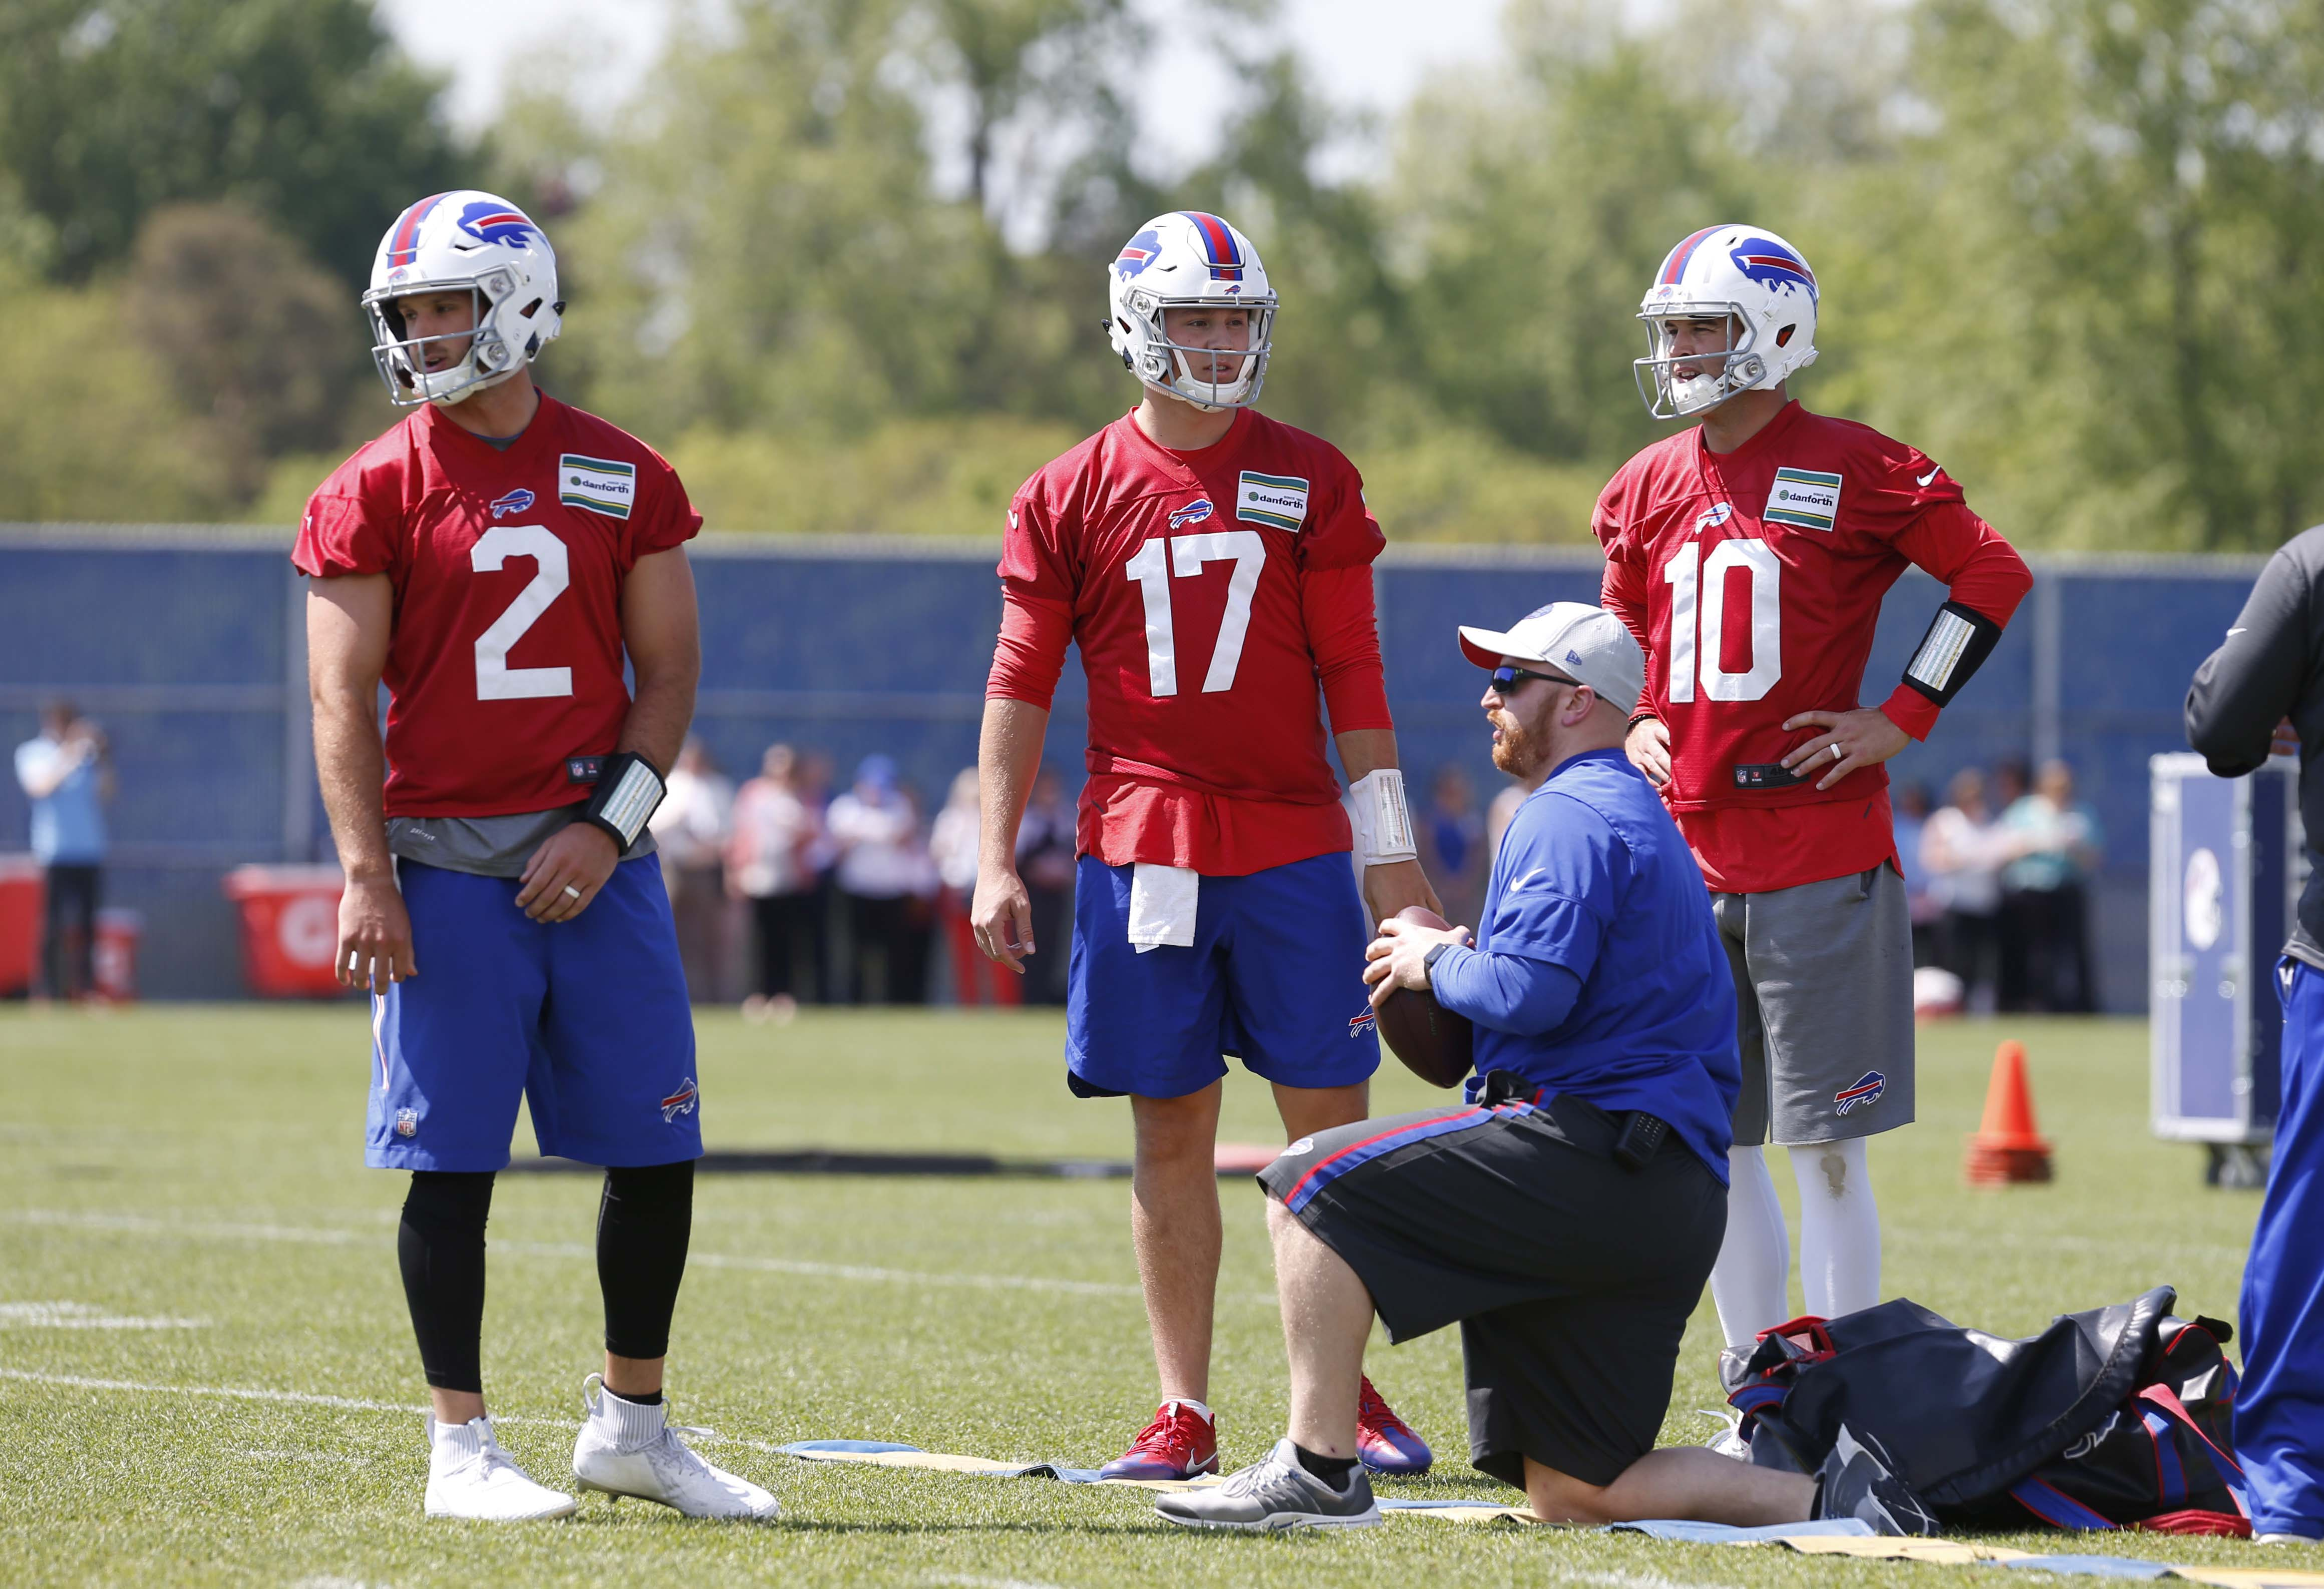 f57310385 Previewing the Buffalo Bills' 53-man Depth Chart: Pre-Training Camp Edition  (Offense)